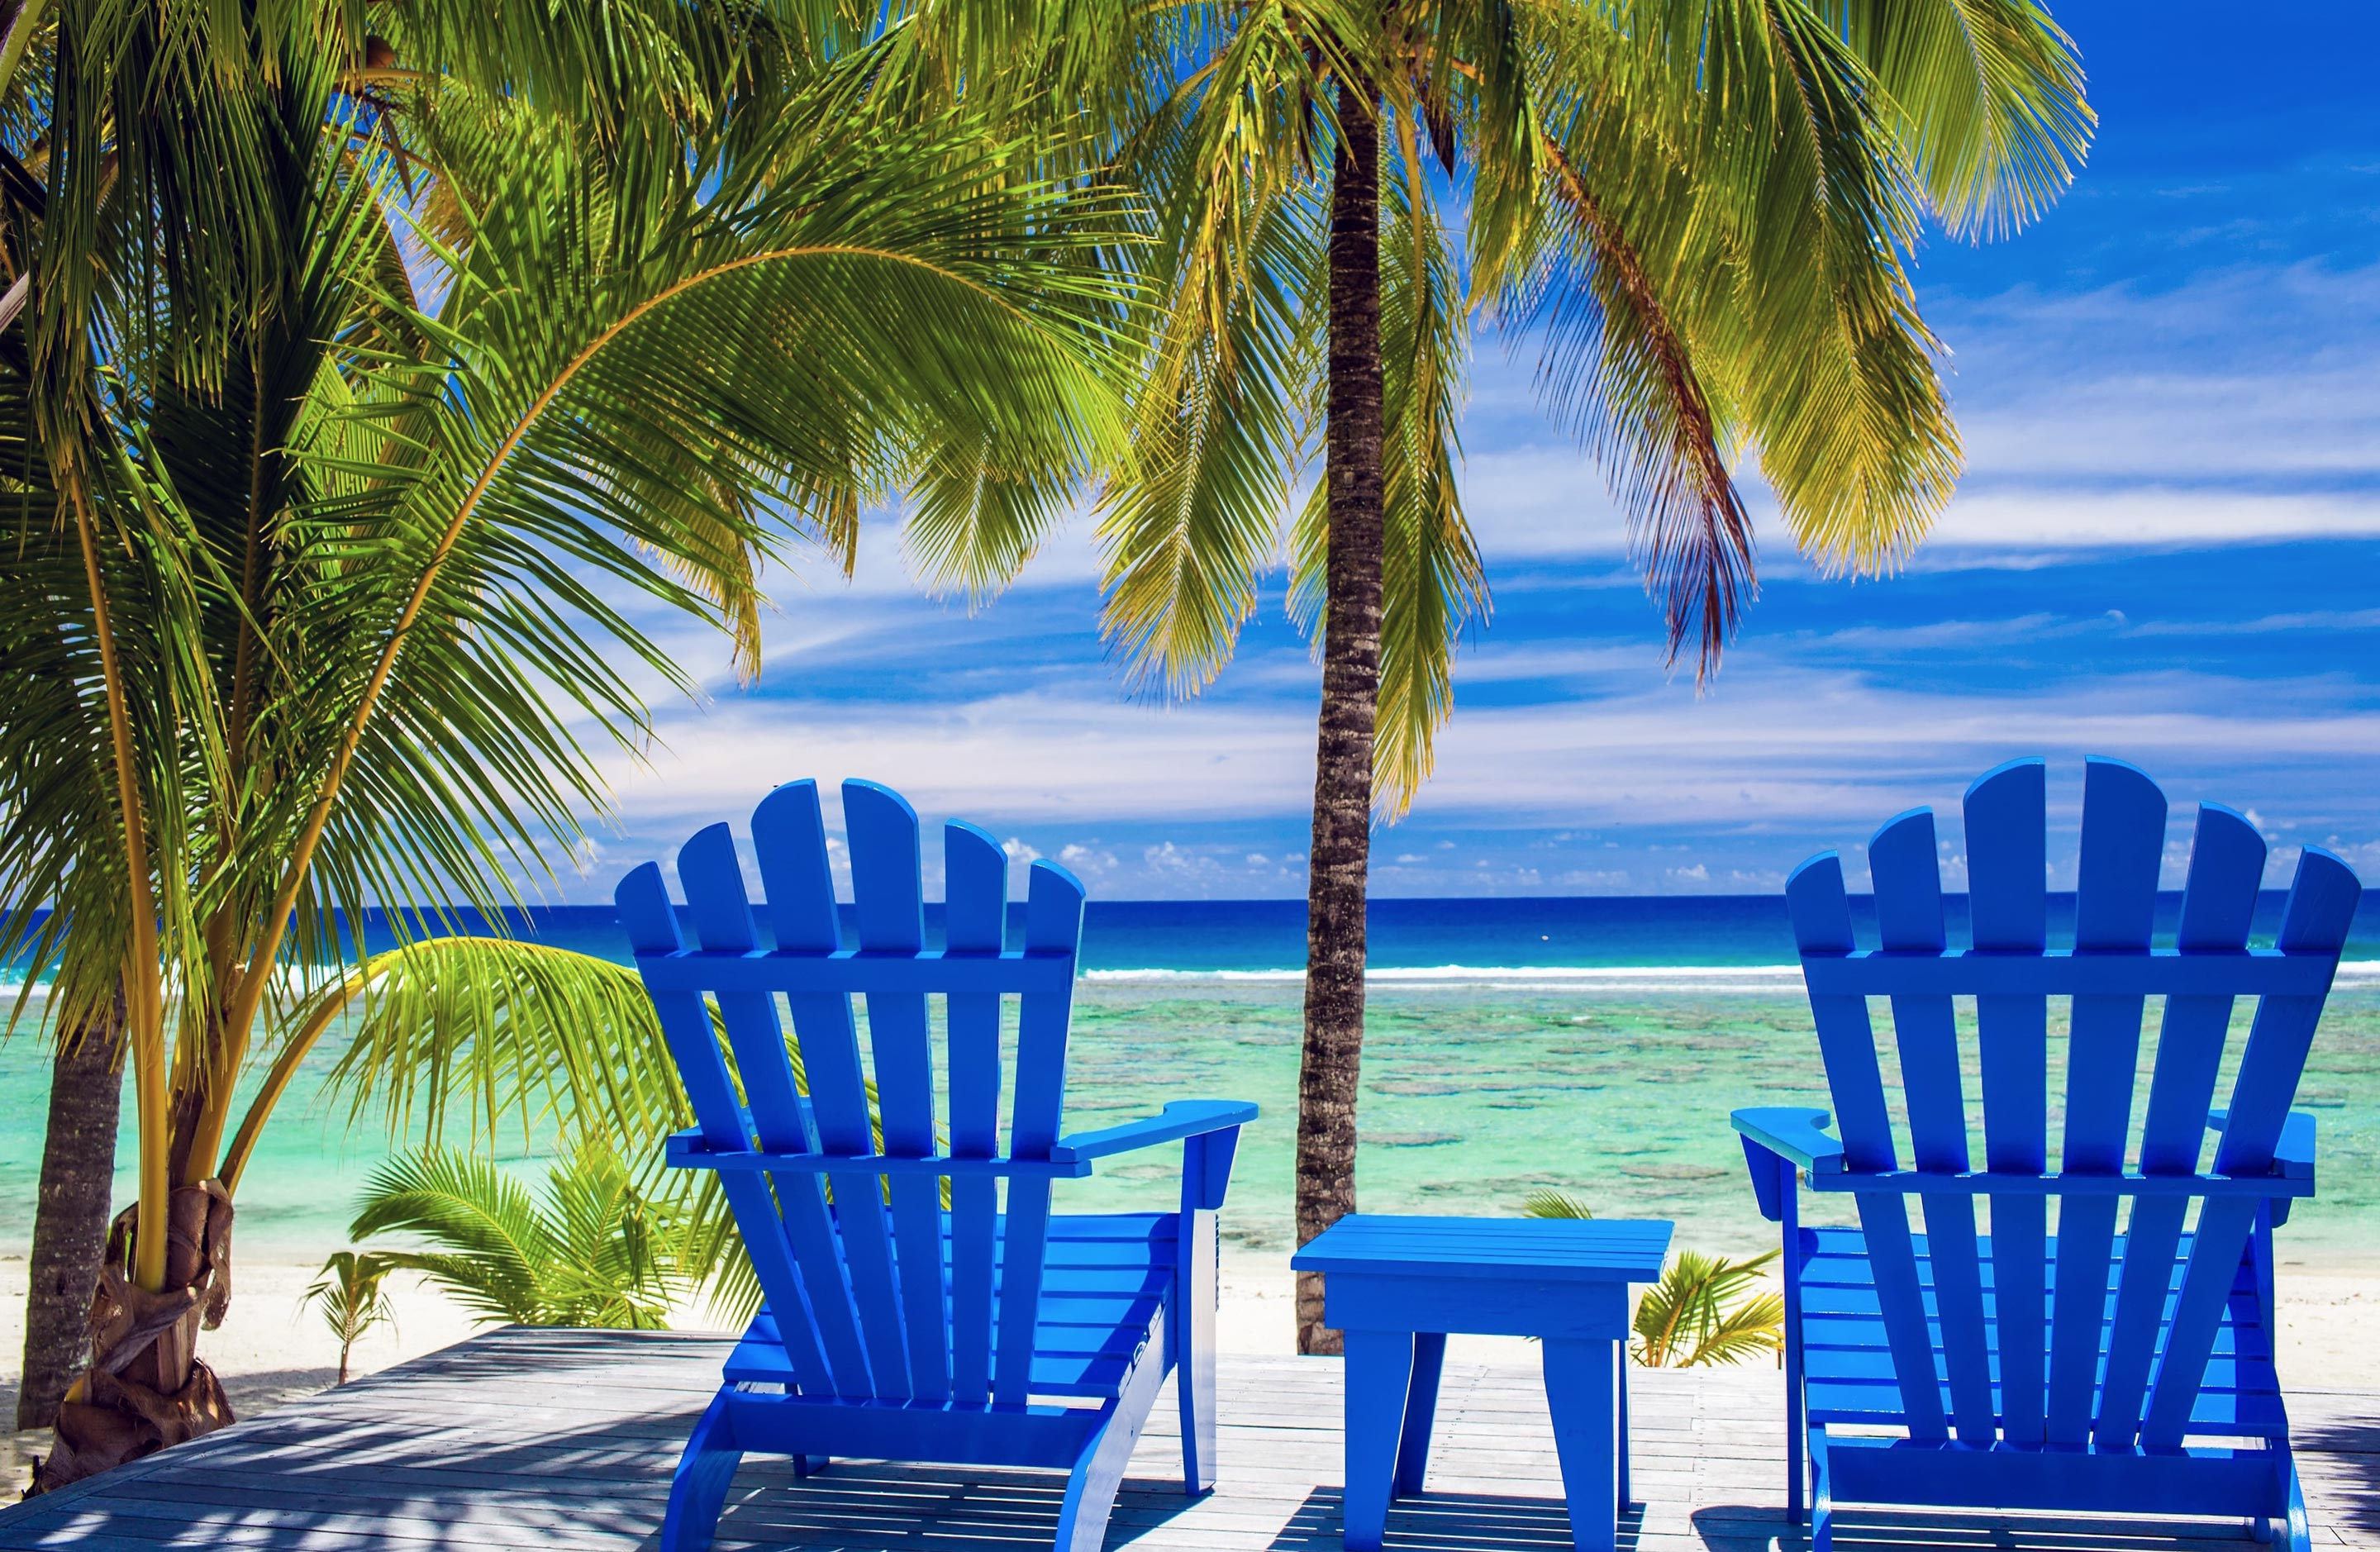 Photo of Beach Chairs & Palm Trees Overlooking The Ocean